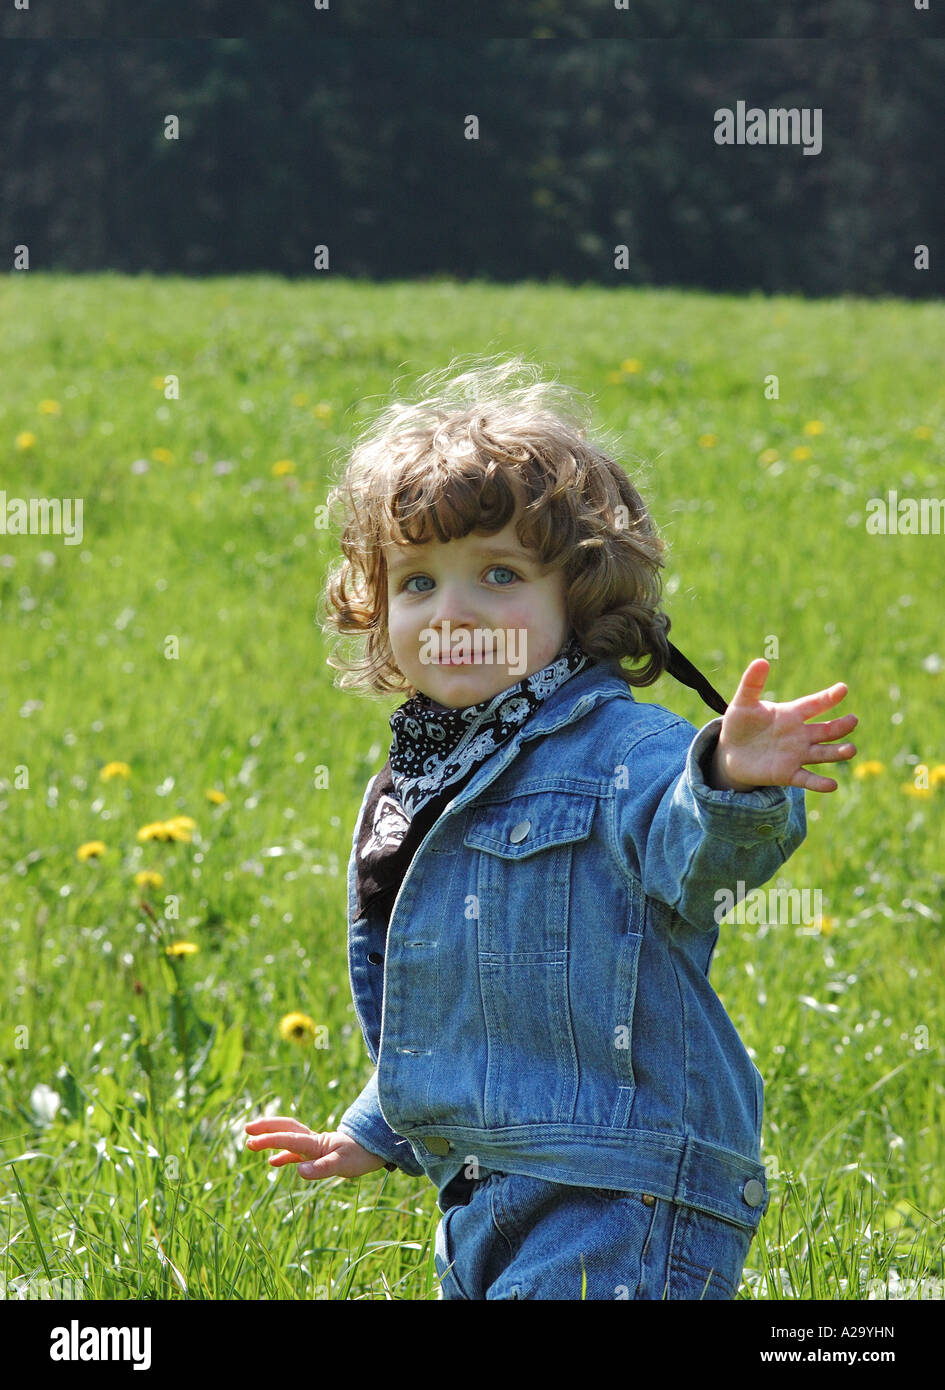 A cute toddler in a hayfield waving to the viewer, as if he/she